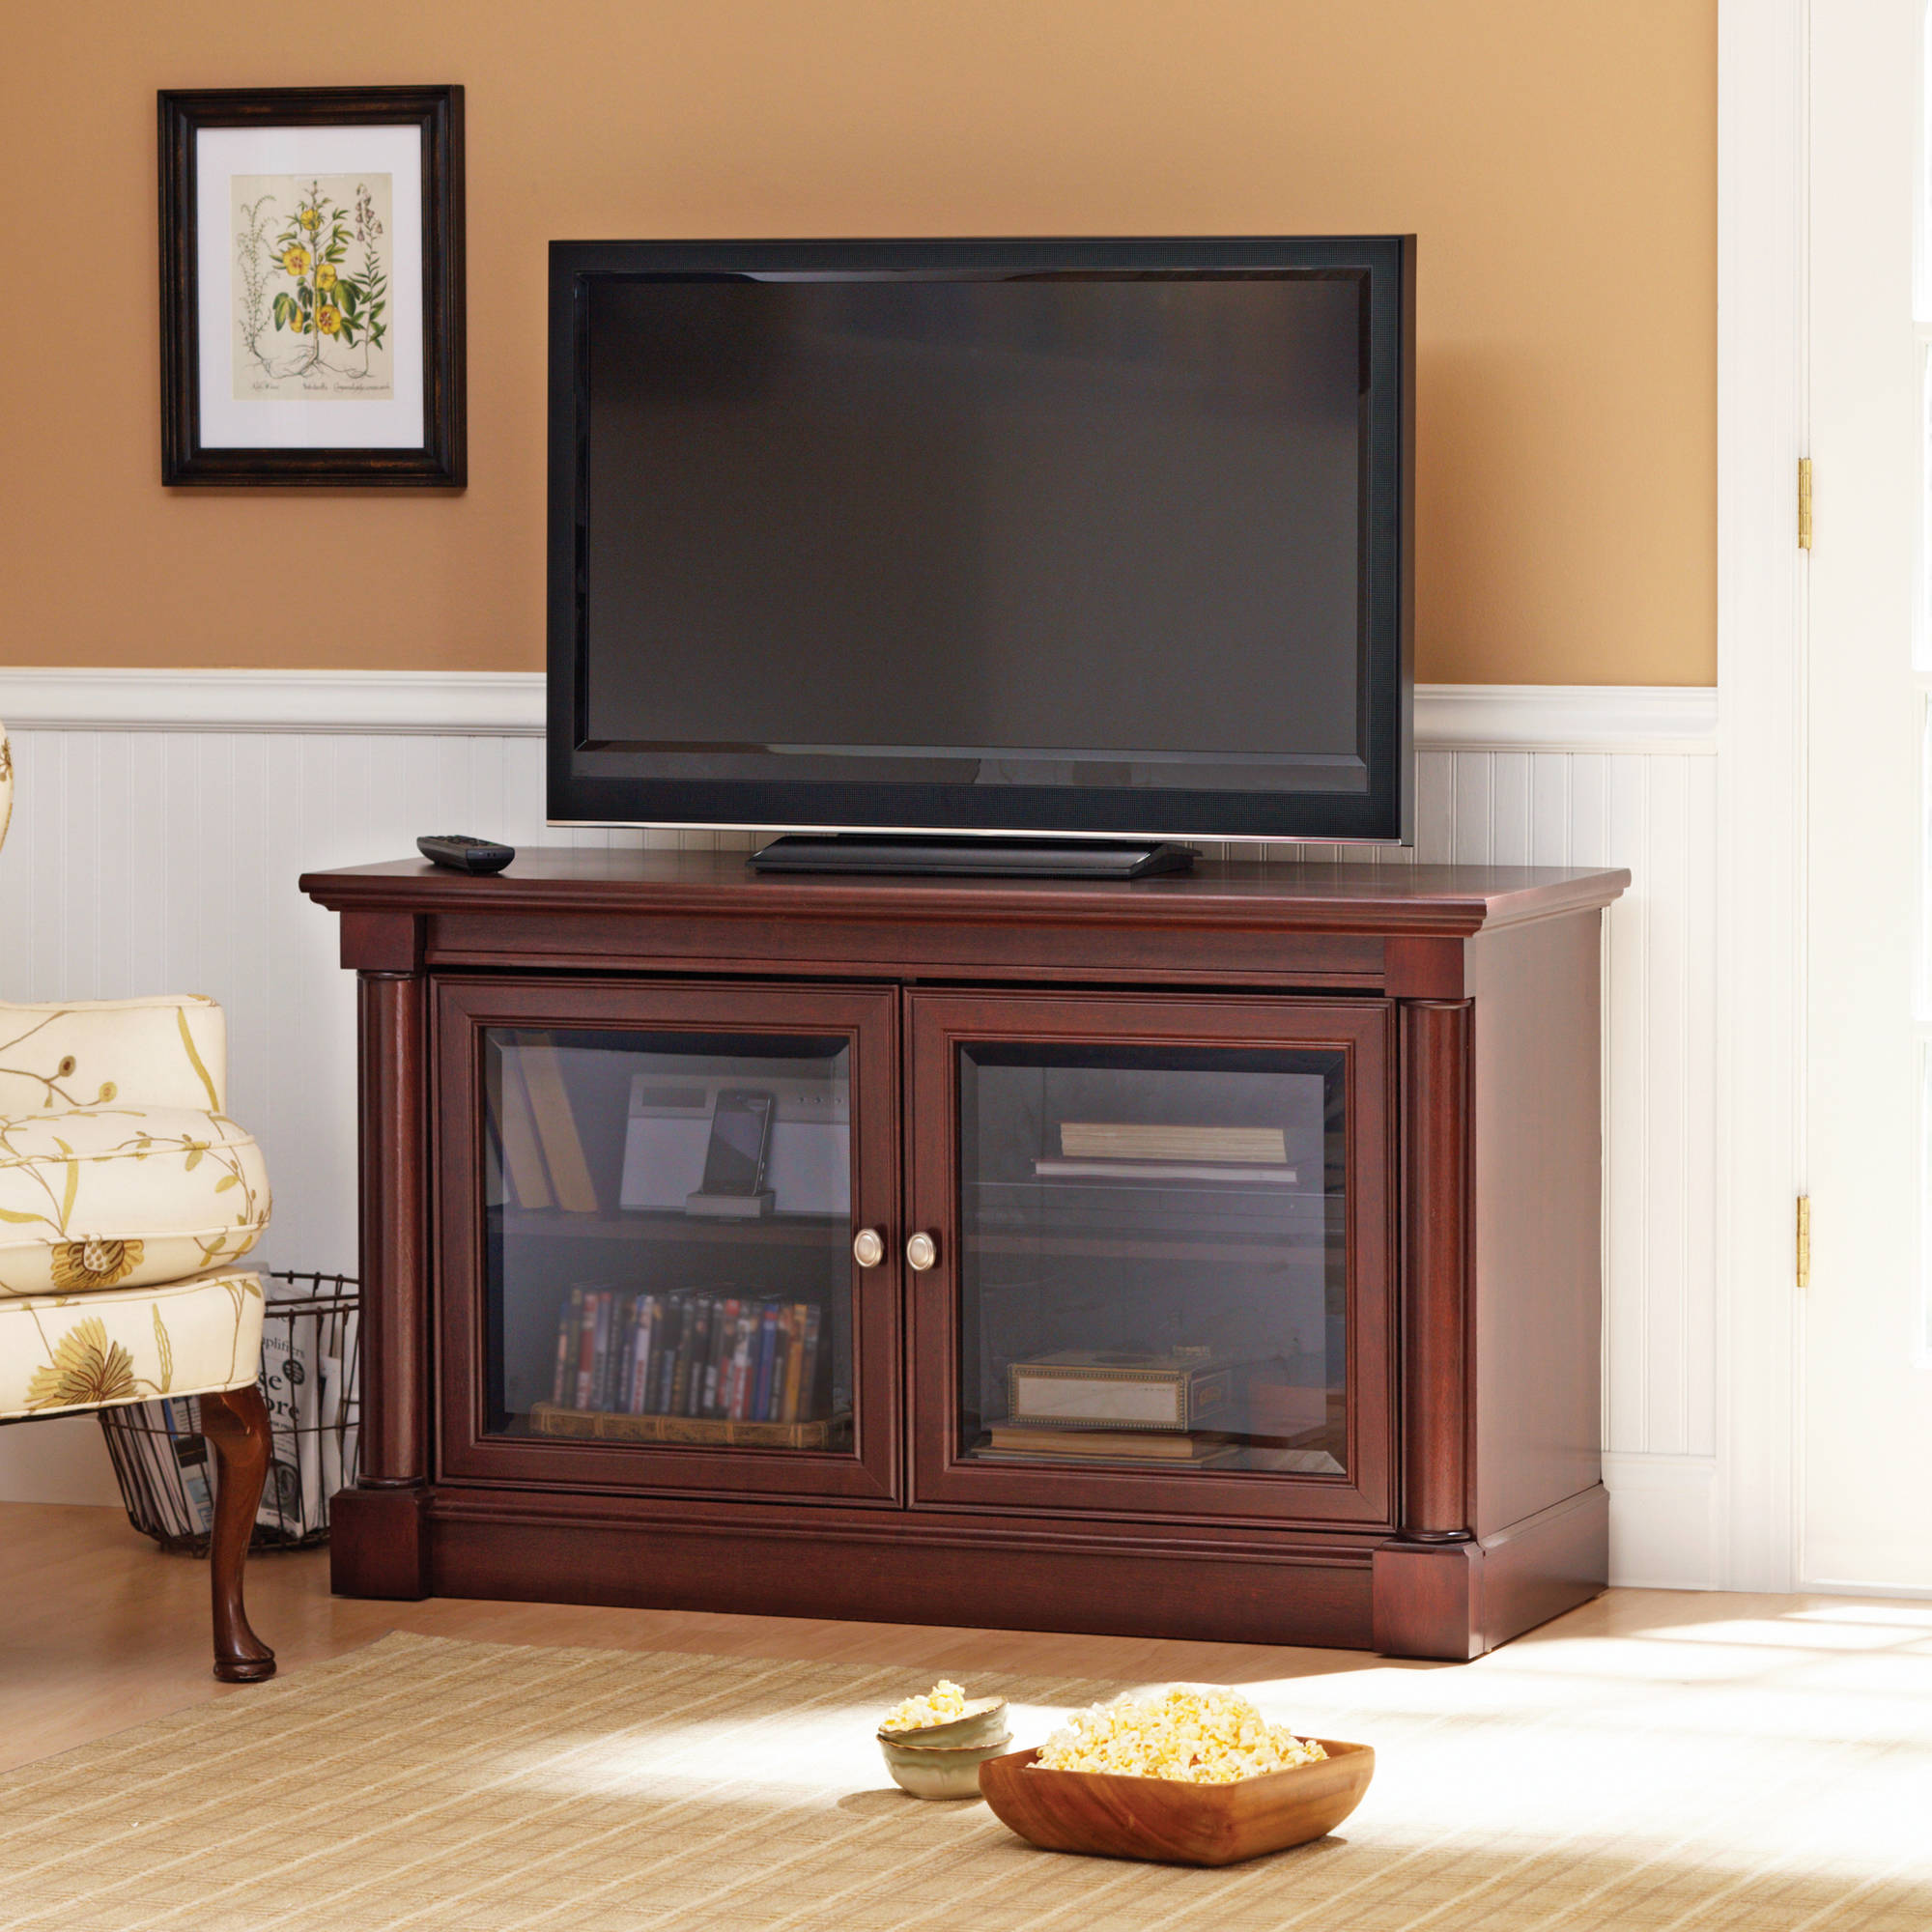 Better Homes Gardens Ashwood Road Tv Stand For Tvs Up To 47 Cherry Finish Walmart Com